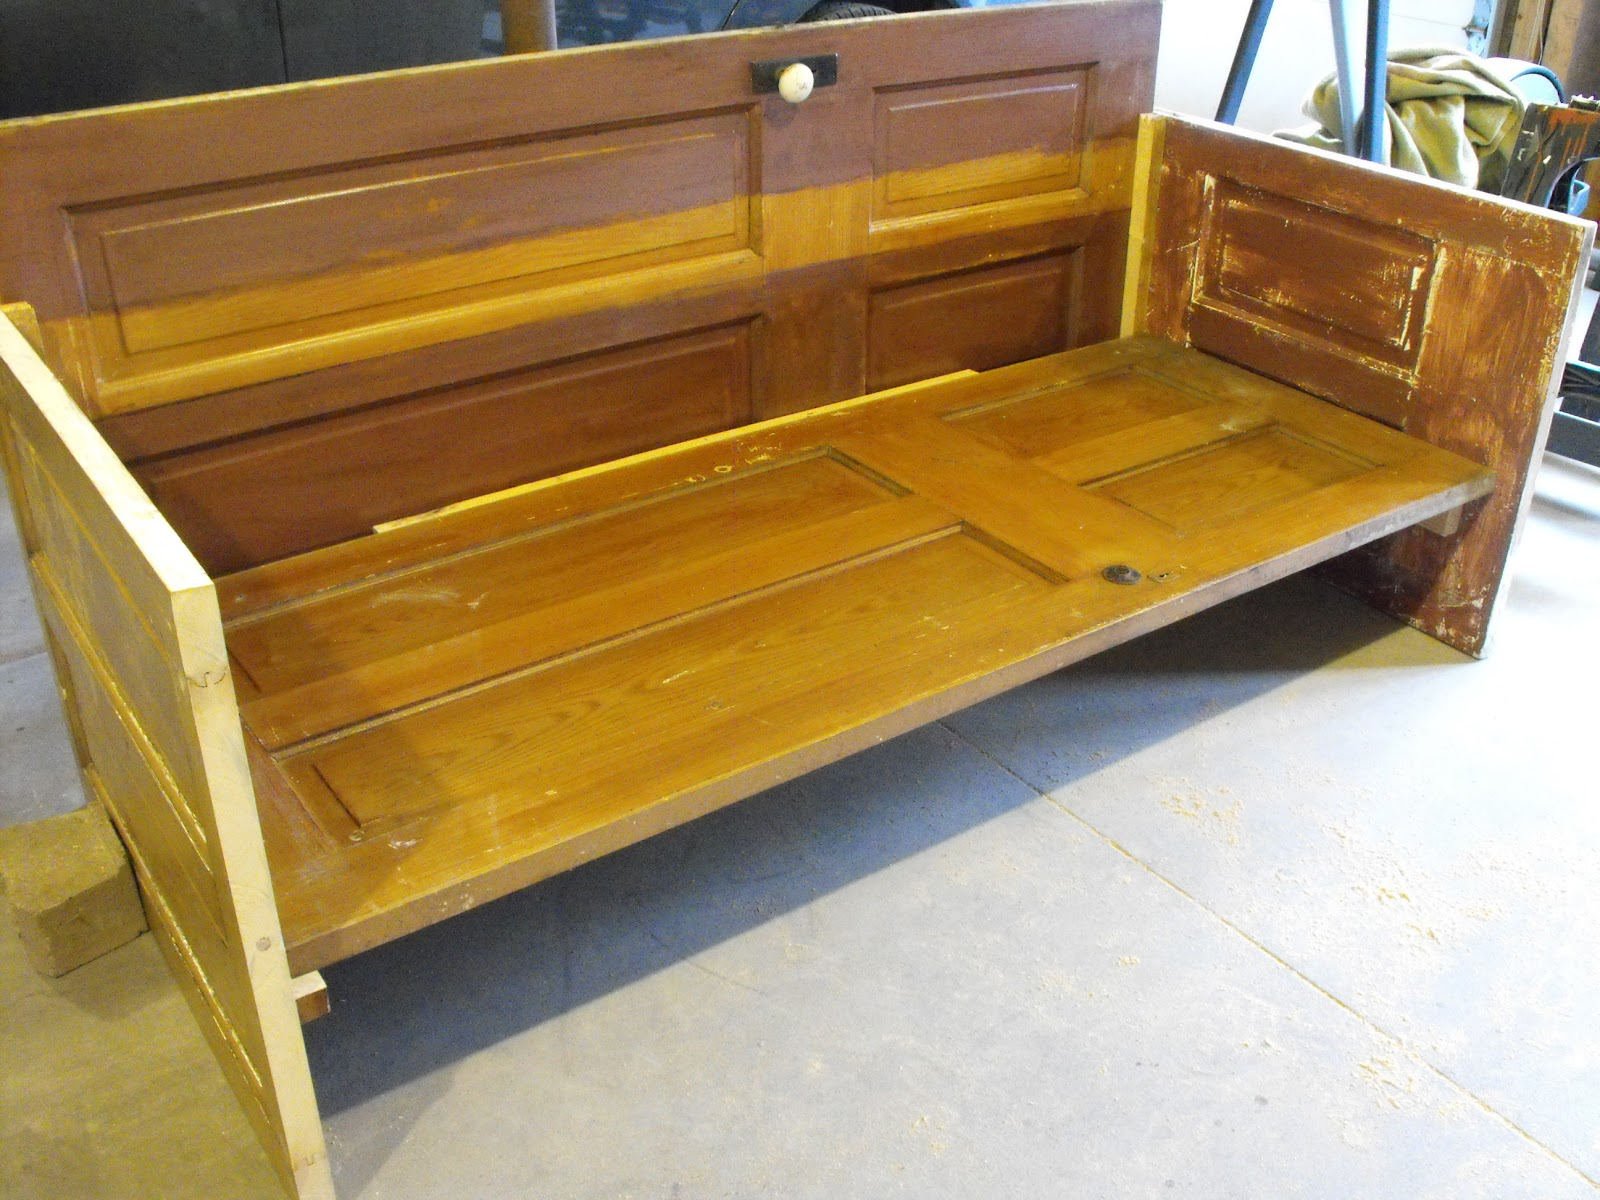 furniture made from doors. At Home With K DIY Door Couch Furniture Made From Doors M